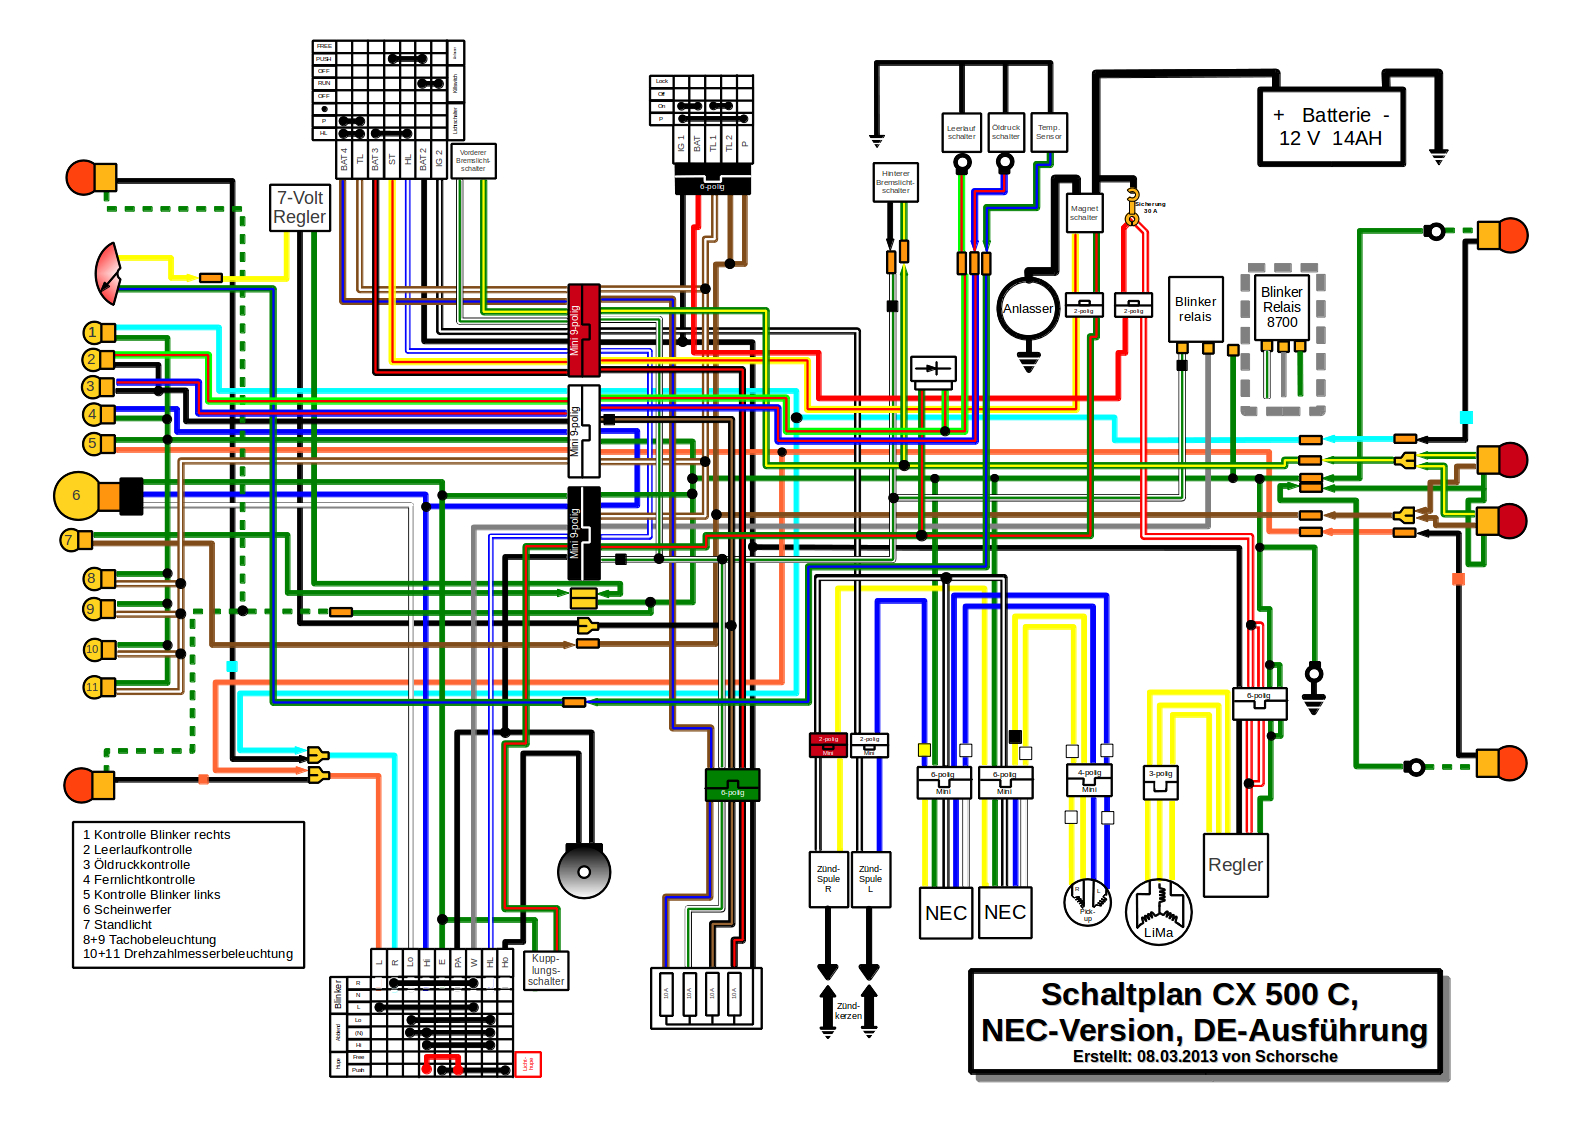 go light wiring diagram Download-Go Light Wiring Diagram Unique New Wiring Harness Still Shorting 6-o